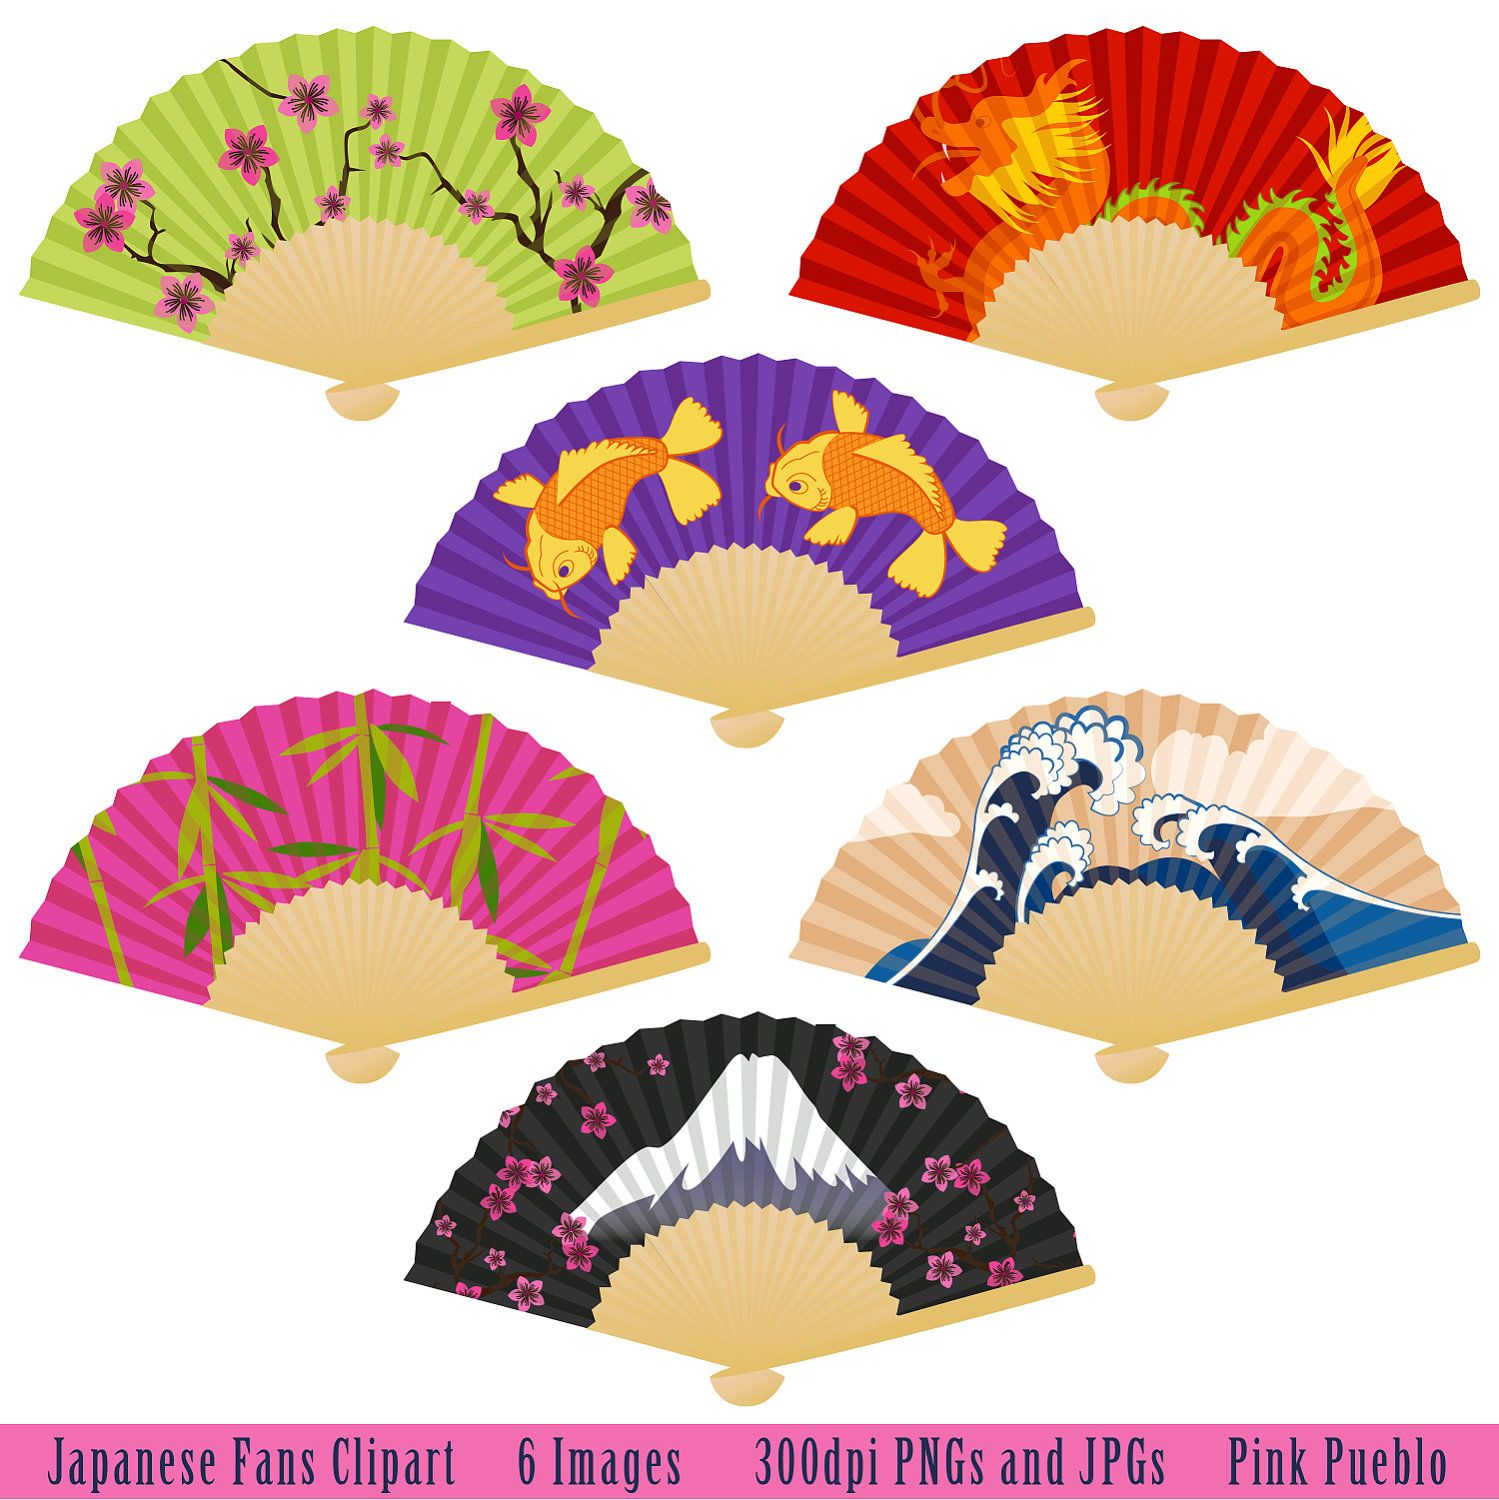 japanese fans clipart clip art with koi dragon by pinkpueblo [ 1499 x 1500 Pixel ]